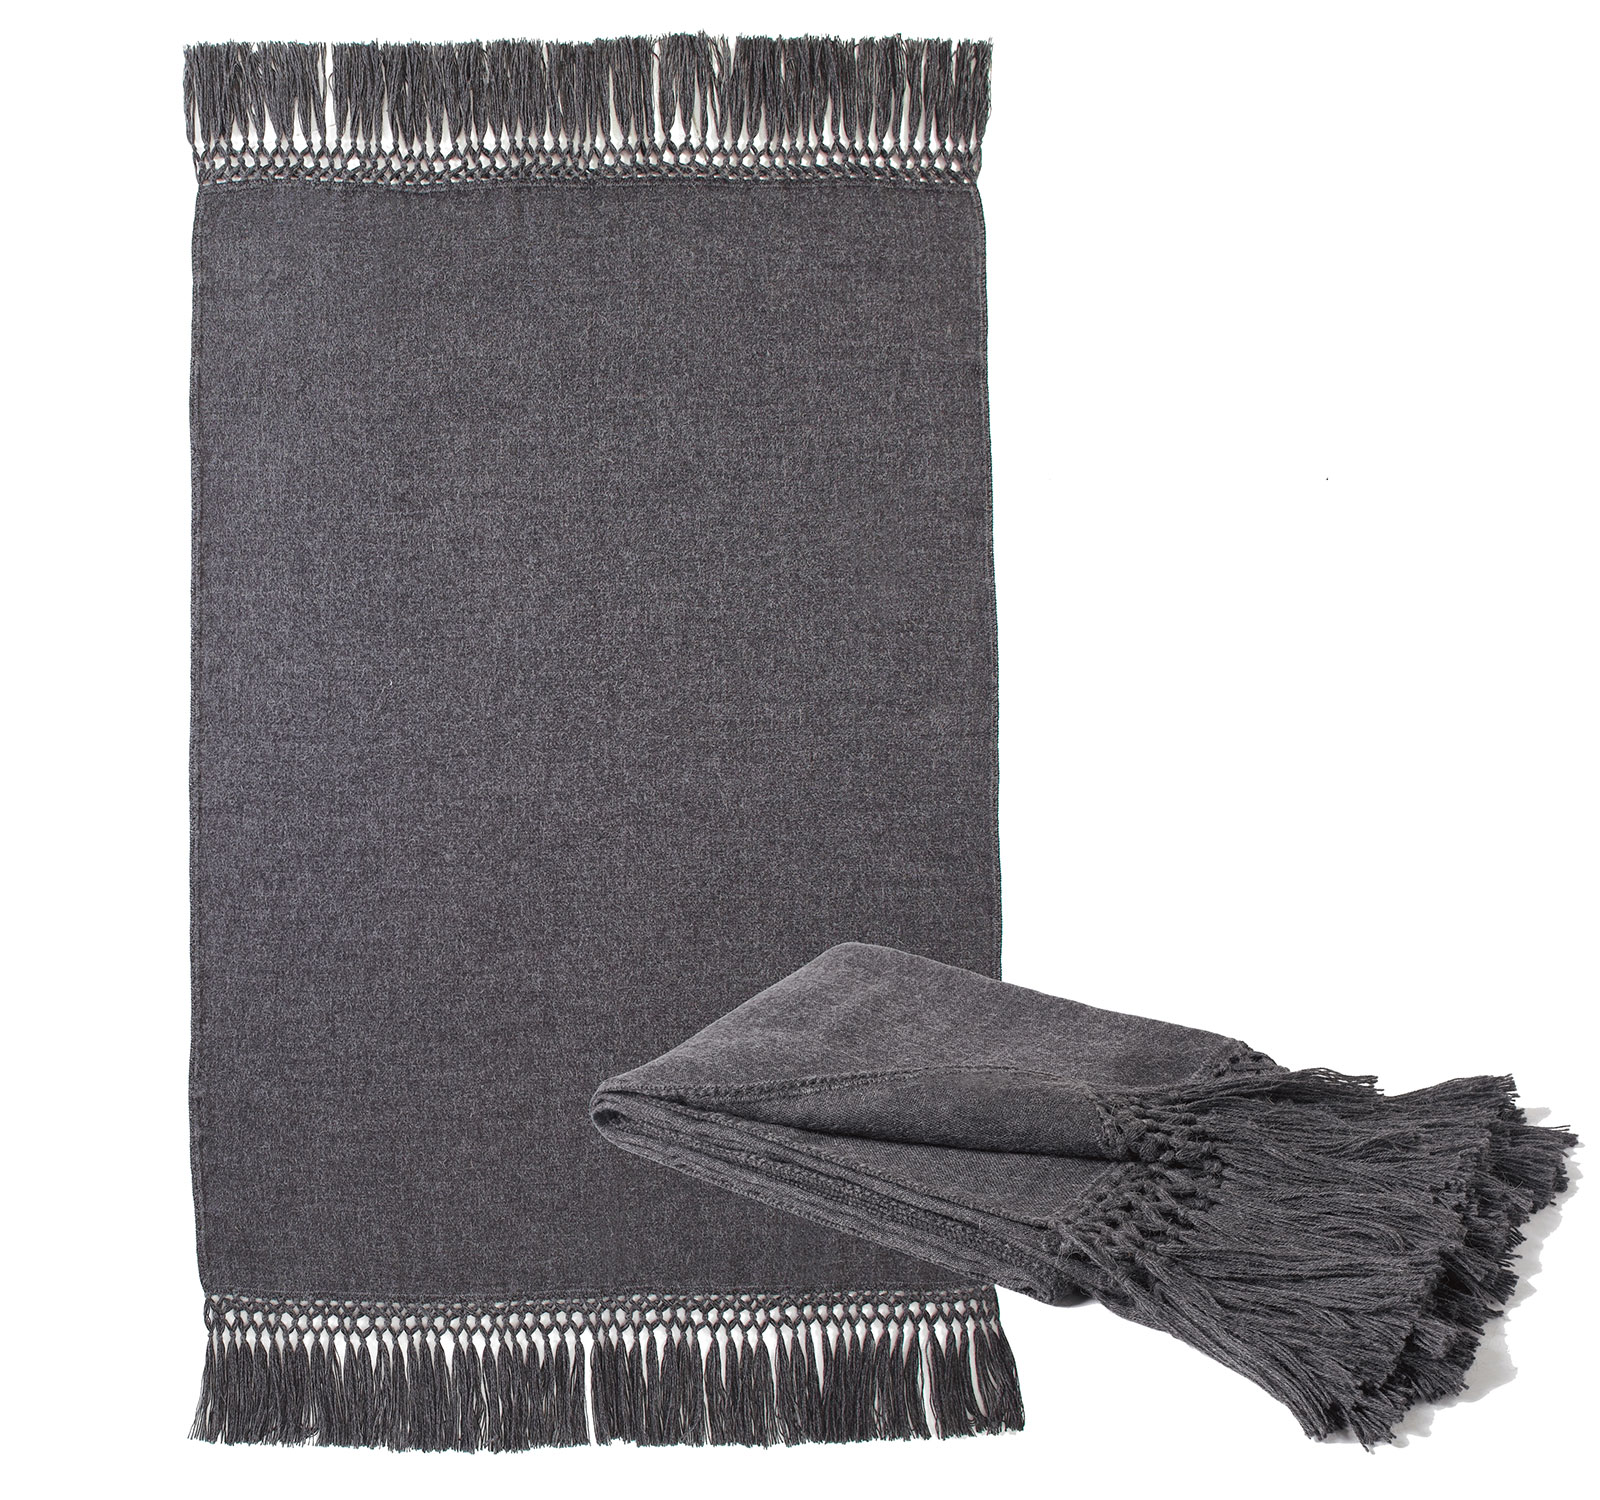 Charcoal Fringed Alpaca Throw